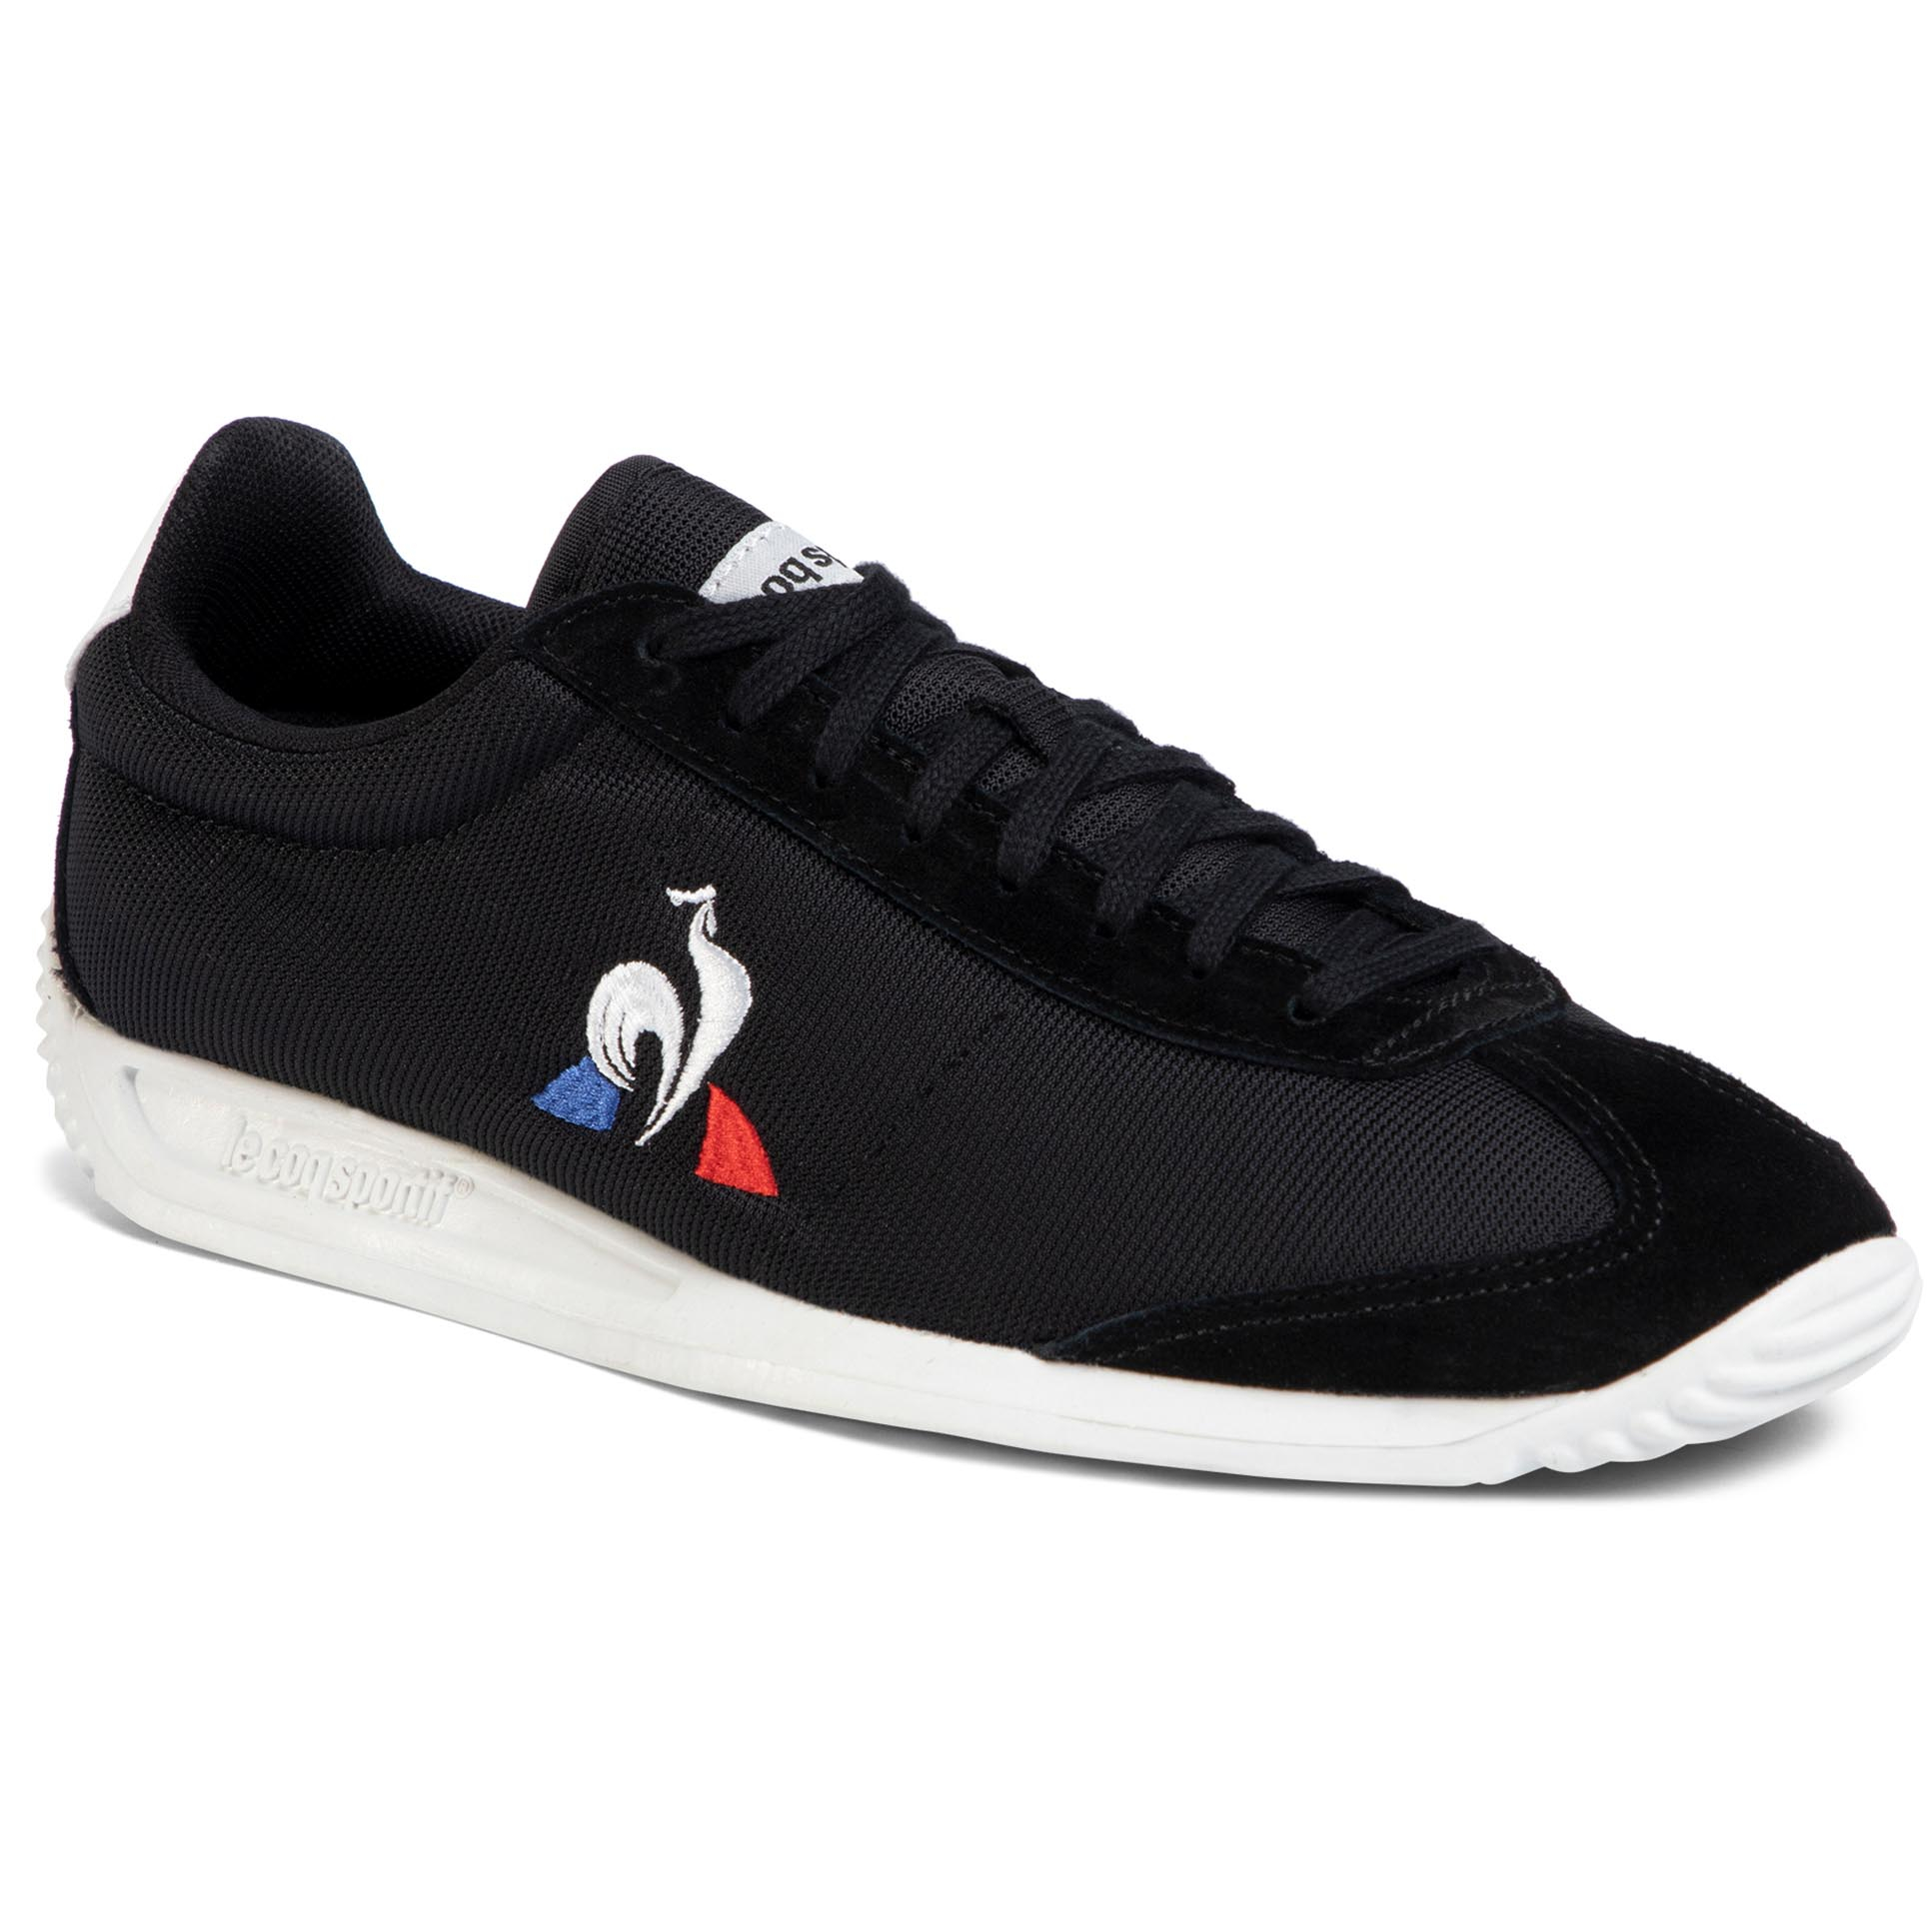 Sneakers Le Coq Sportif - Quartz Sport 2010306 Black/Optical White imagine